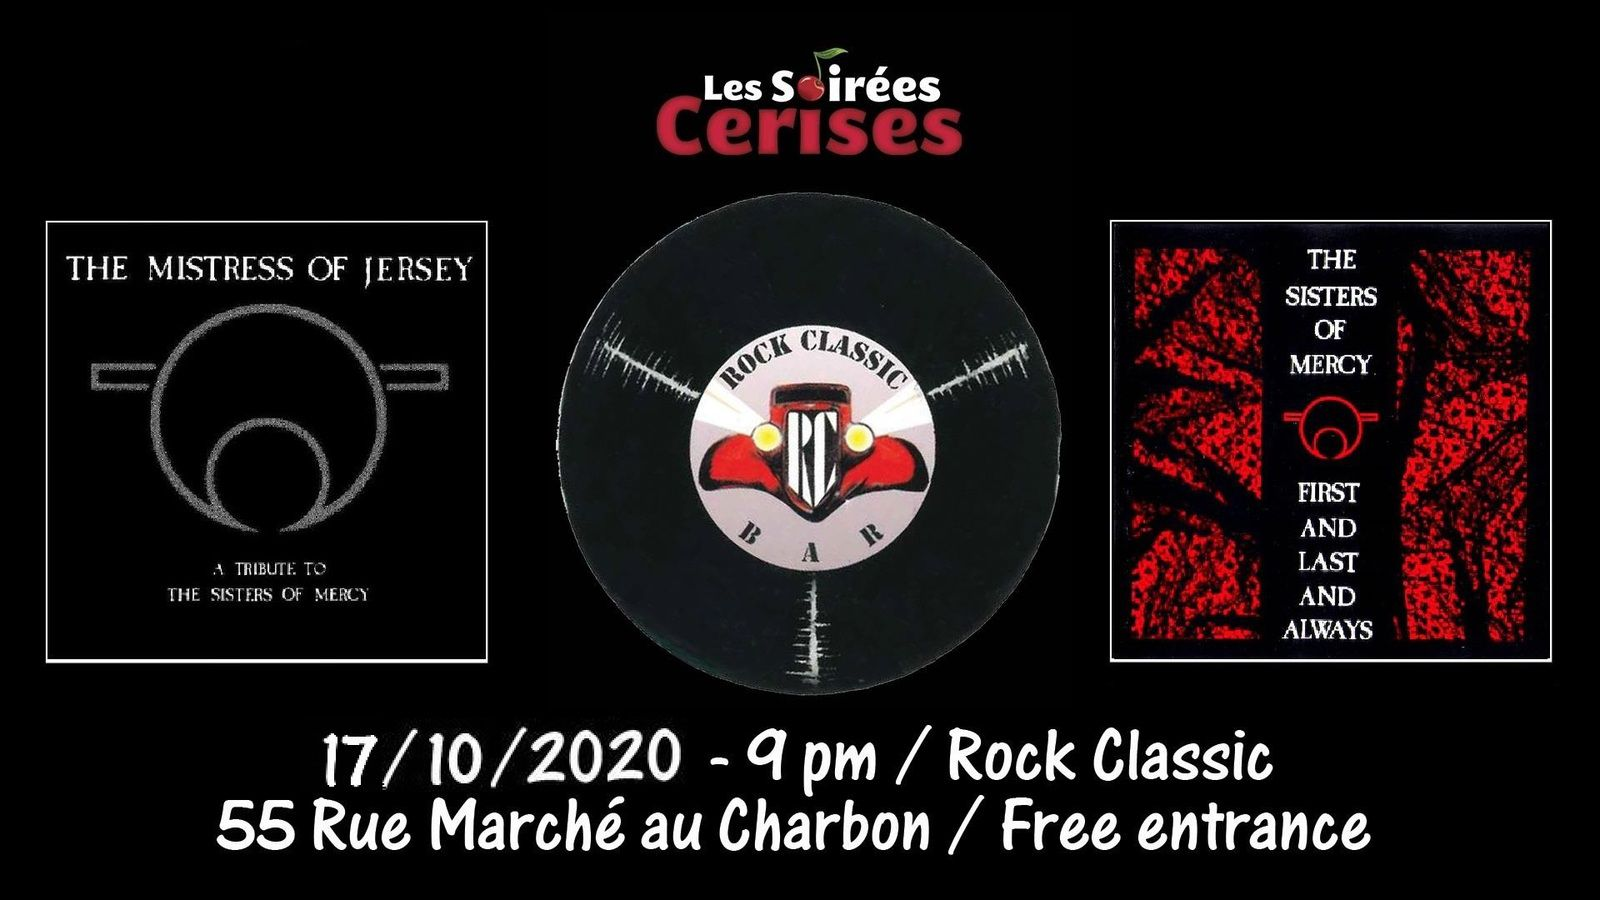 🎵 The Mistress of Jersey performing 'First and Last and Always' @ Rock Classic - 17/10/2020 - Entrée gratuite / Free entrance